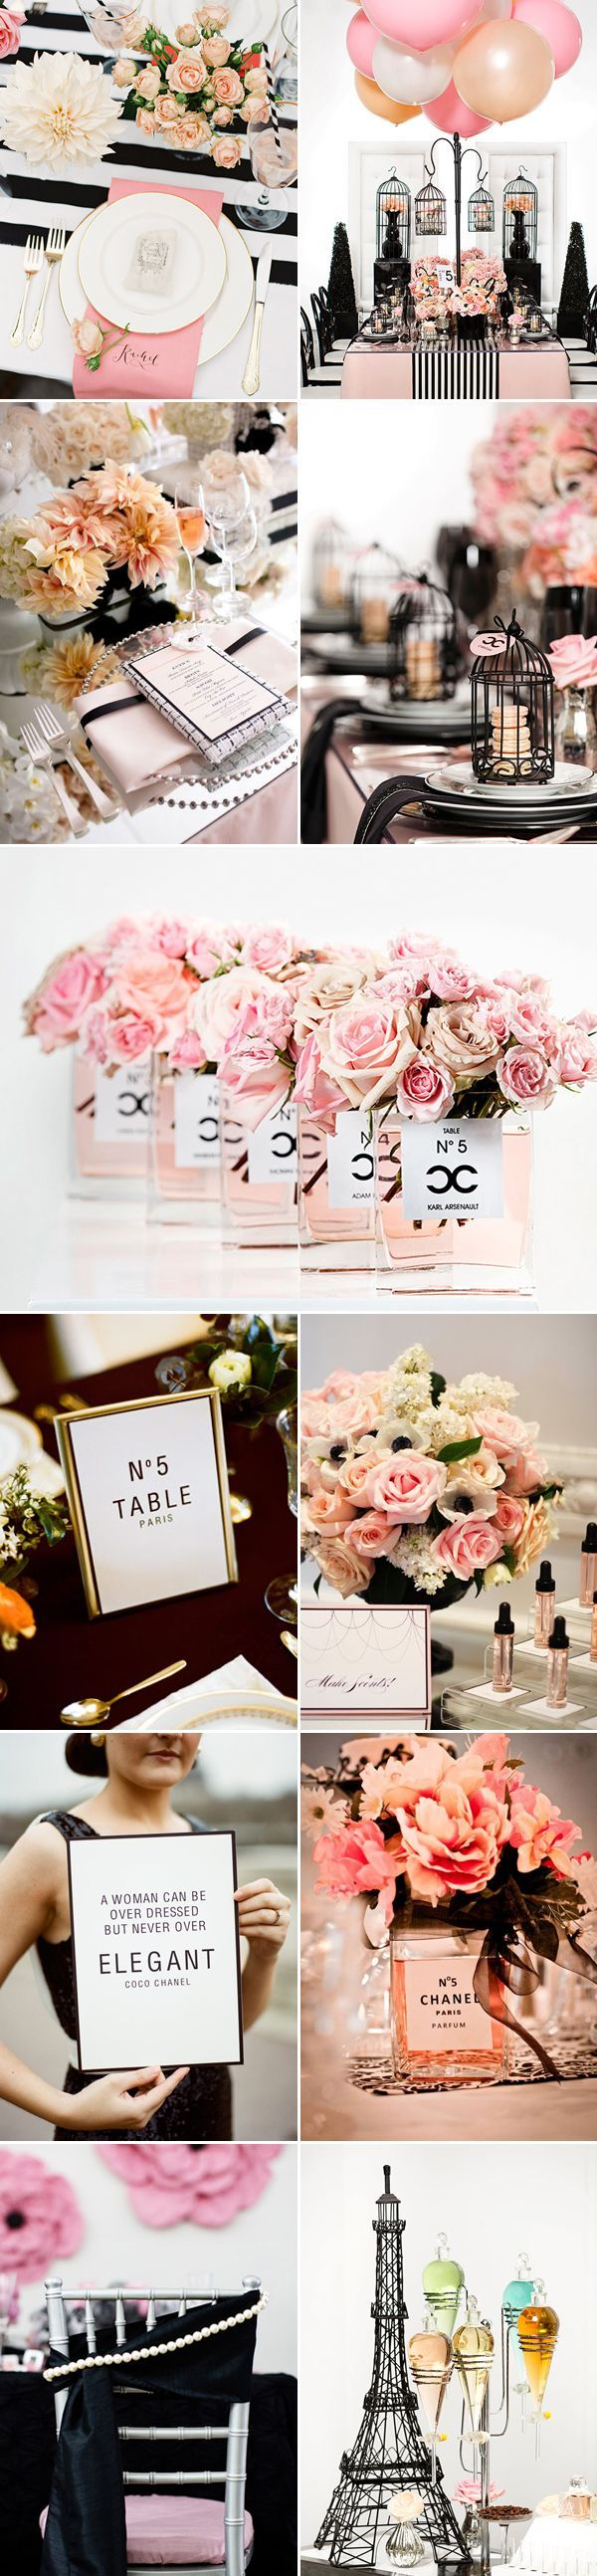 Classy and Fabulous! Chanel-Inspired Wedding Designs.